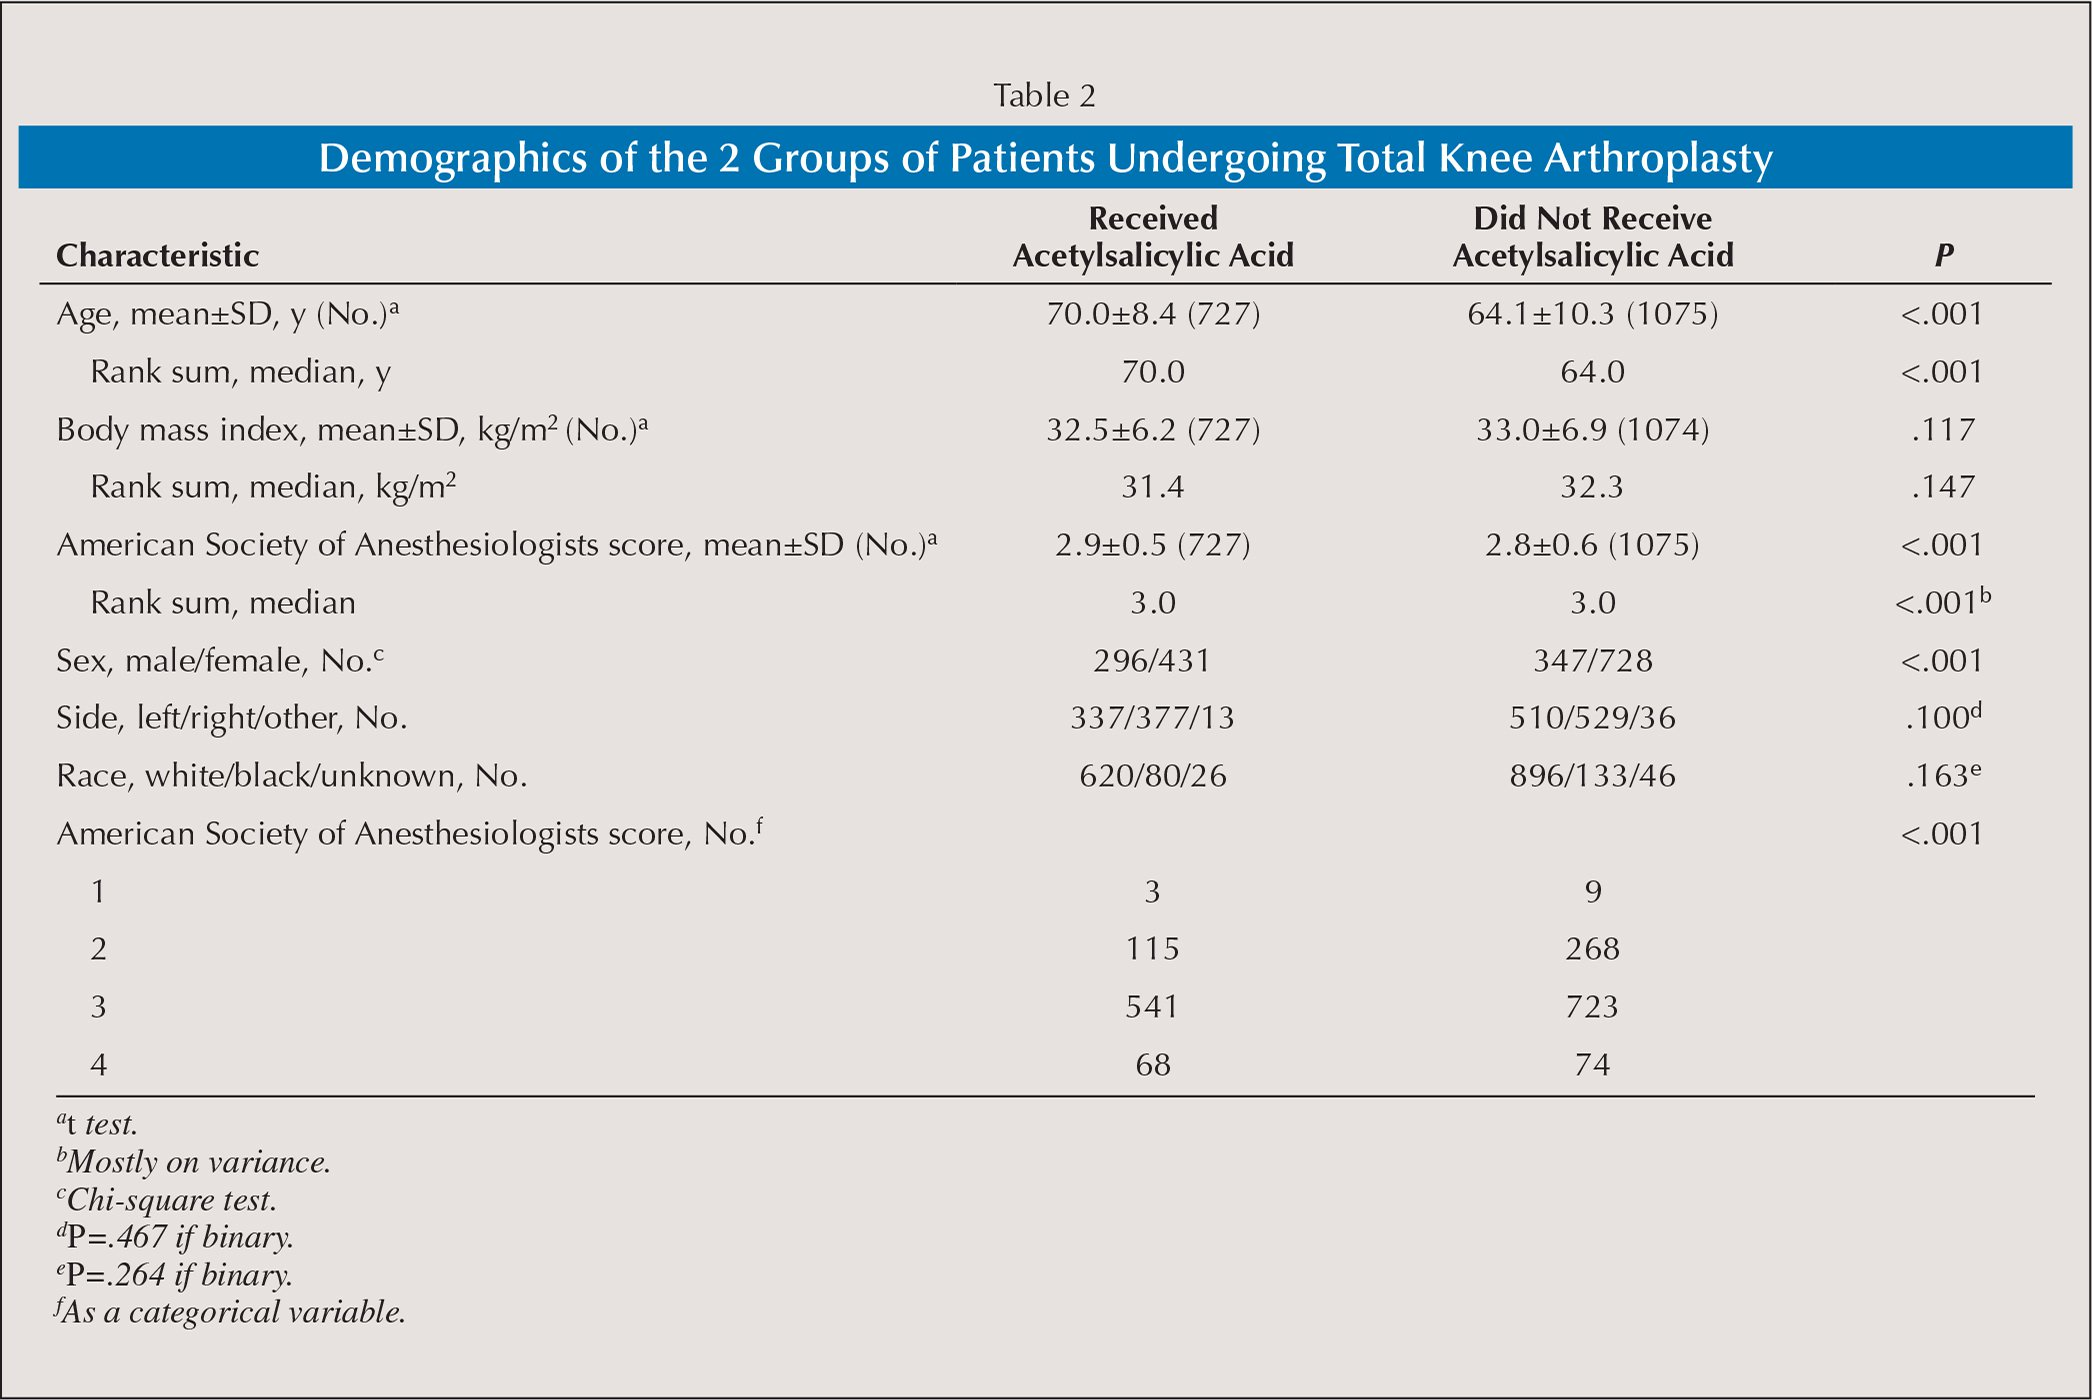 Demographics of the 2 Groups of Patients Undergoing Total Knee Arthroplasty